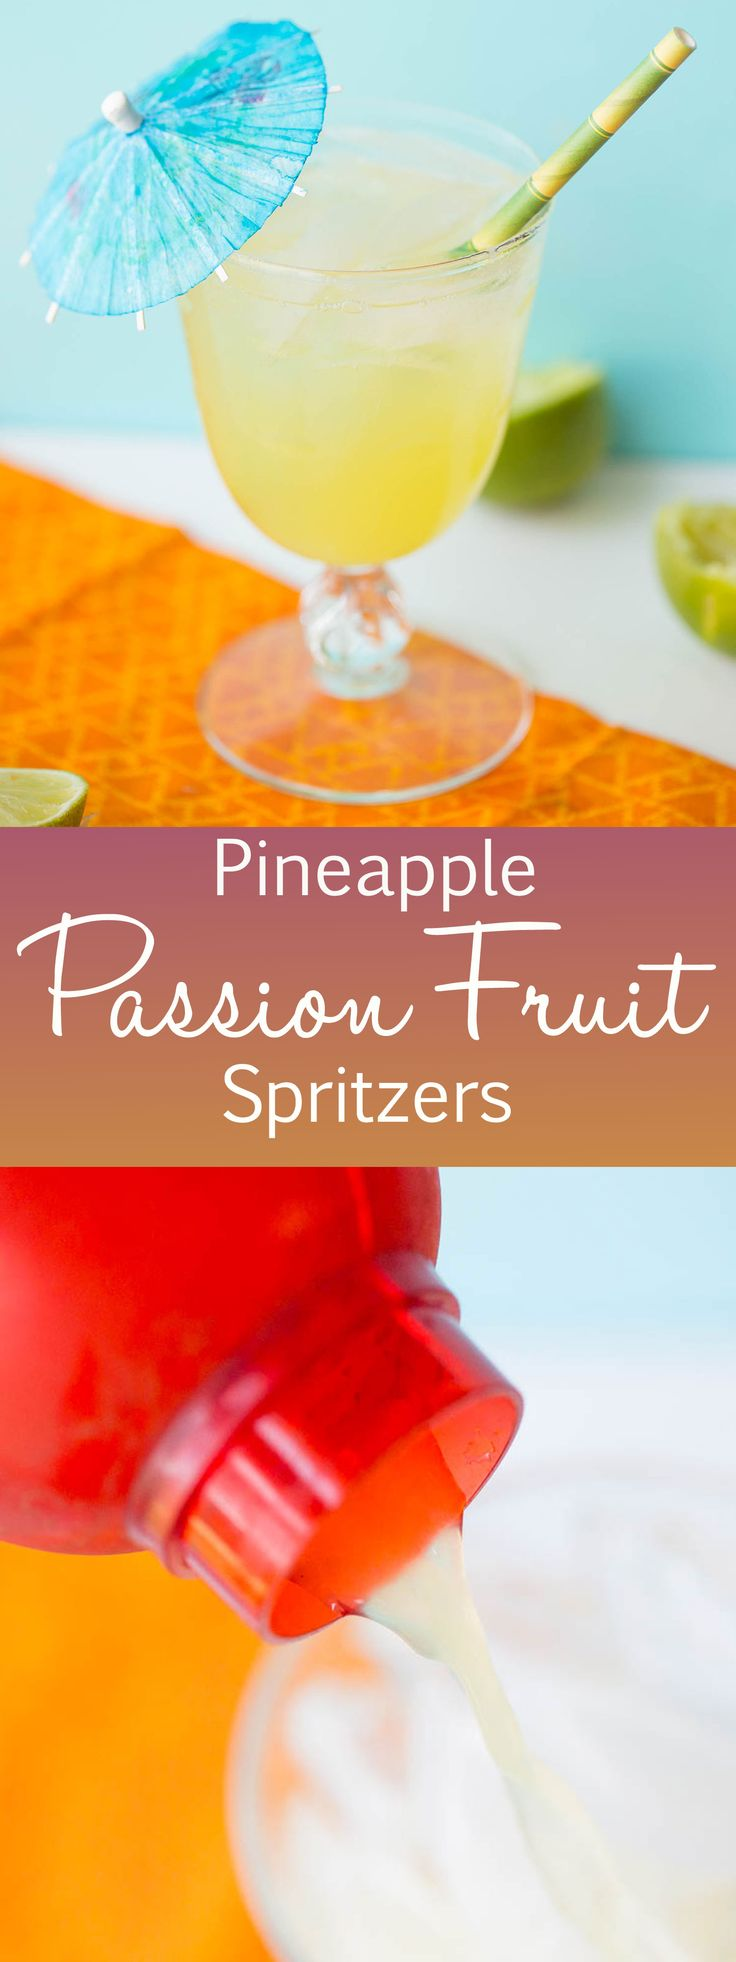 cocktail and to Fruit Passion spritzers hot fruit and Spritzers  These day  a white are Pineapple perfect Vodka passion run on sip the free light fizzy and grey summer are vodka